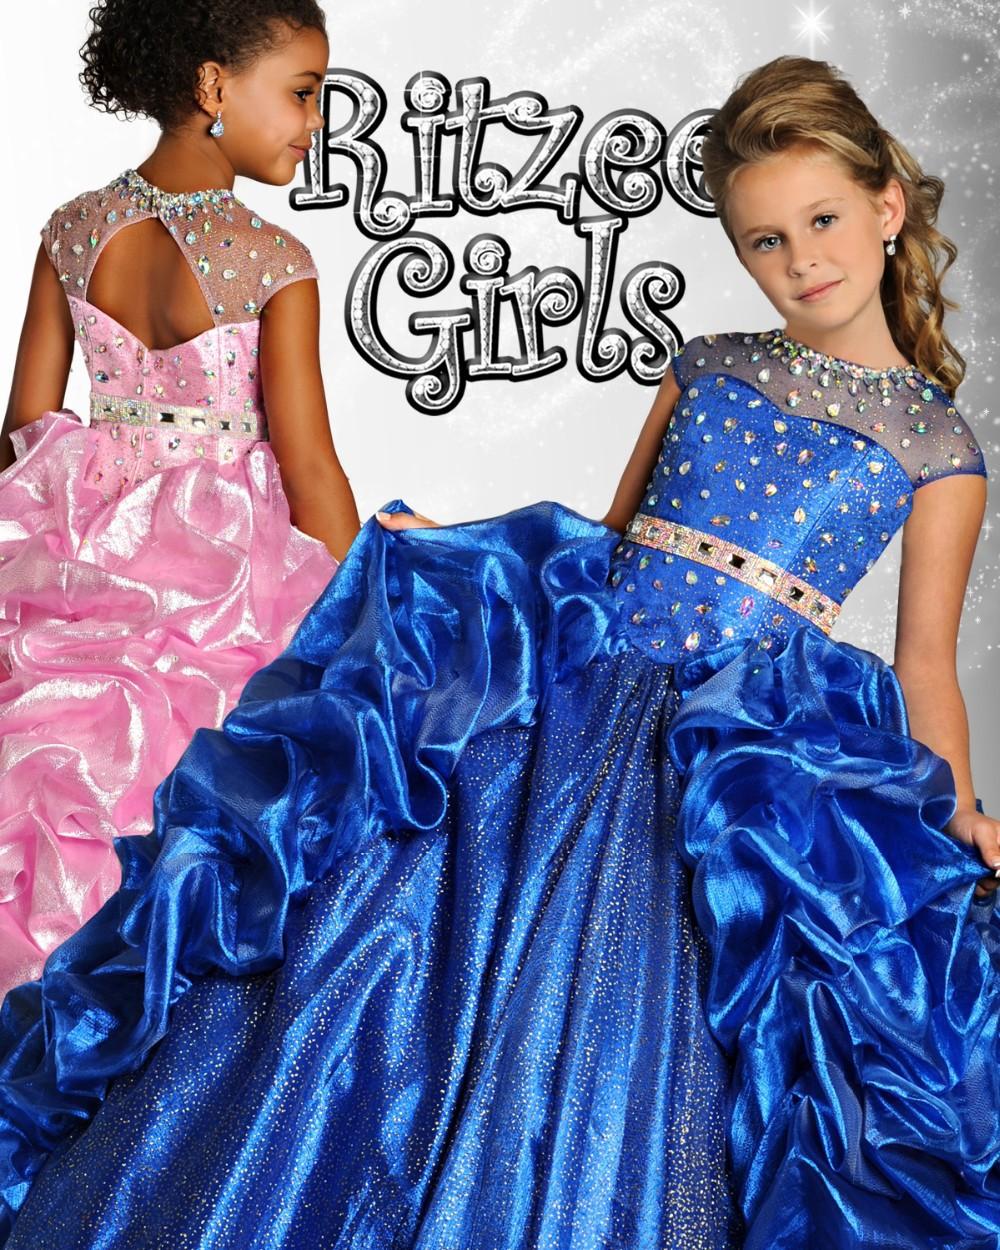 Stunning Kids Pageant Dresses Rhinestone Beaded Glitz Organza Ruffles Sheer Open Back Ball Gowns Pick-ups for Little Flower Girl hot newest fuchsia ball gown organza ruffles flower girl dresses kids pageant dresses vestidos de desfile kids party dresses